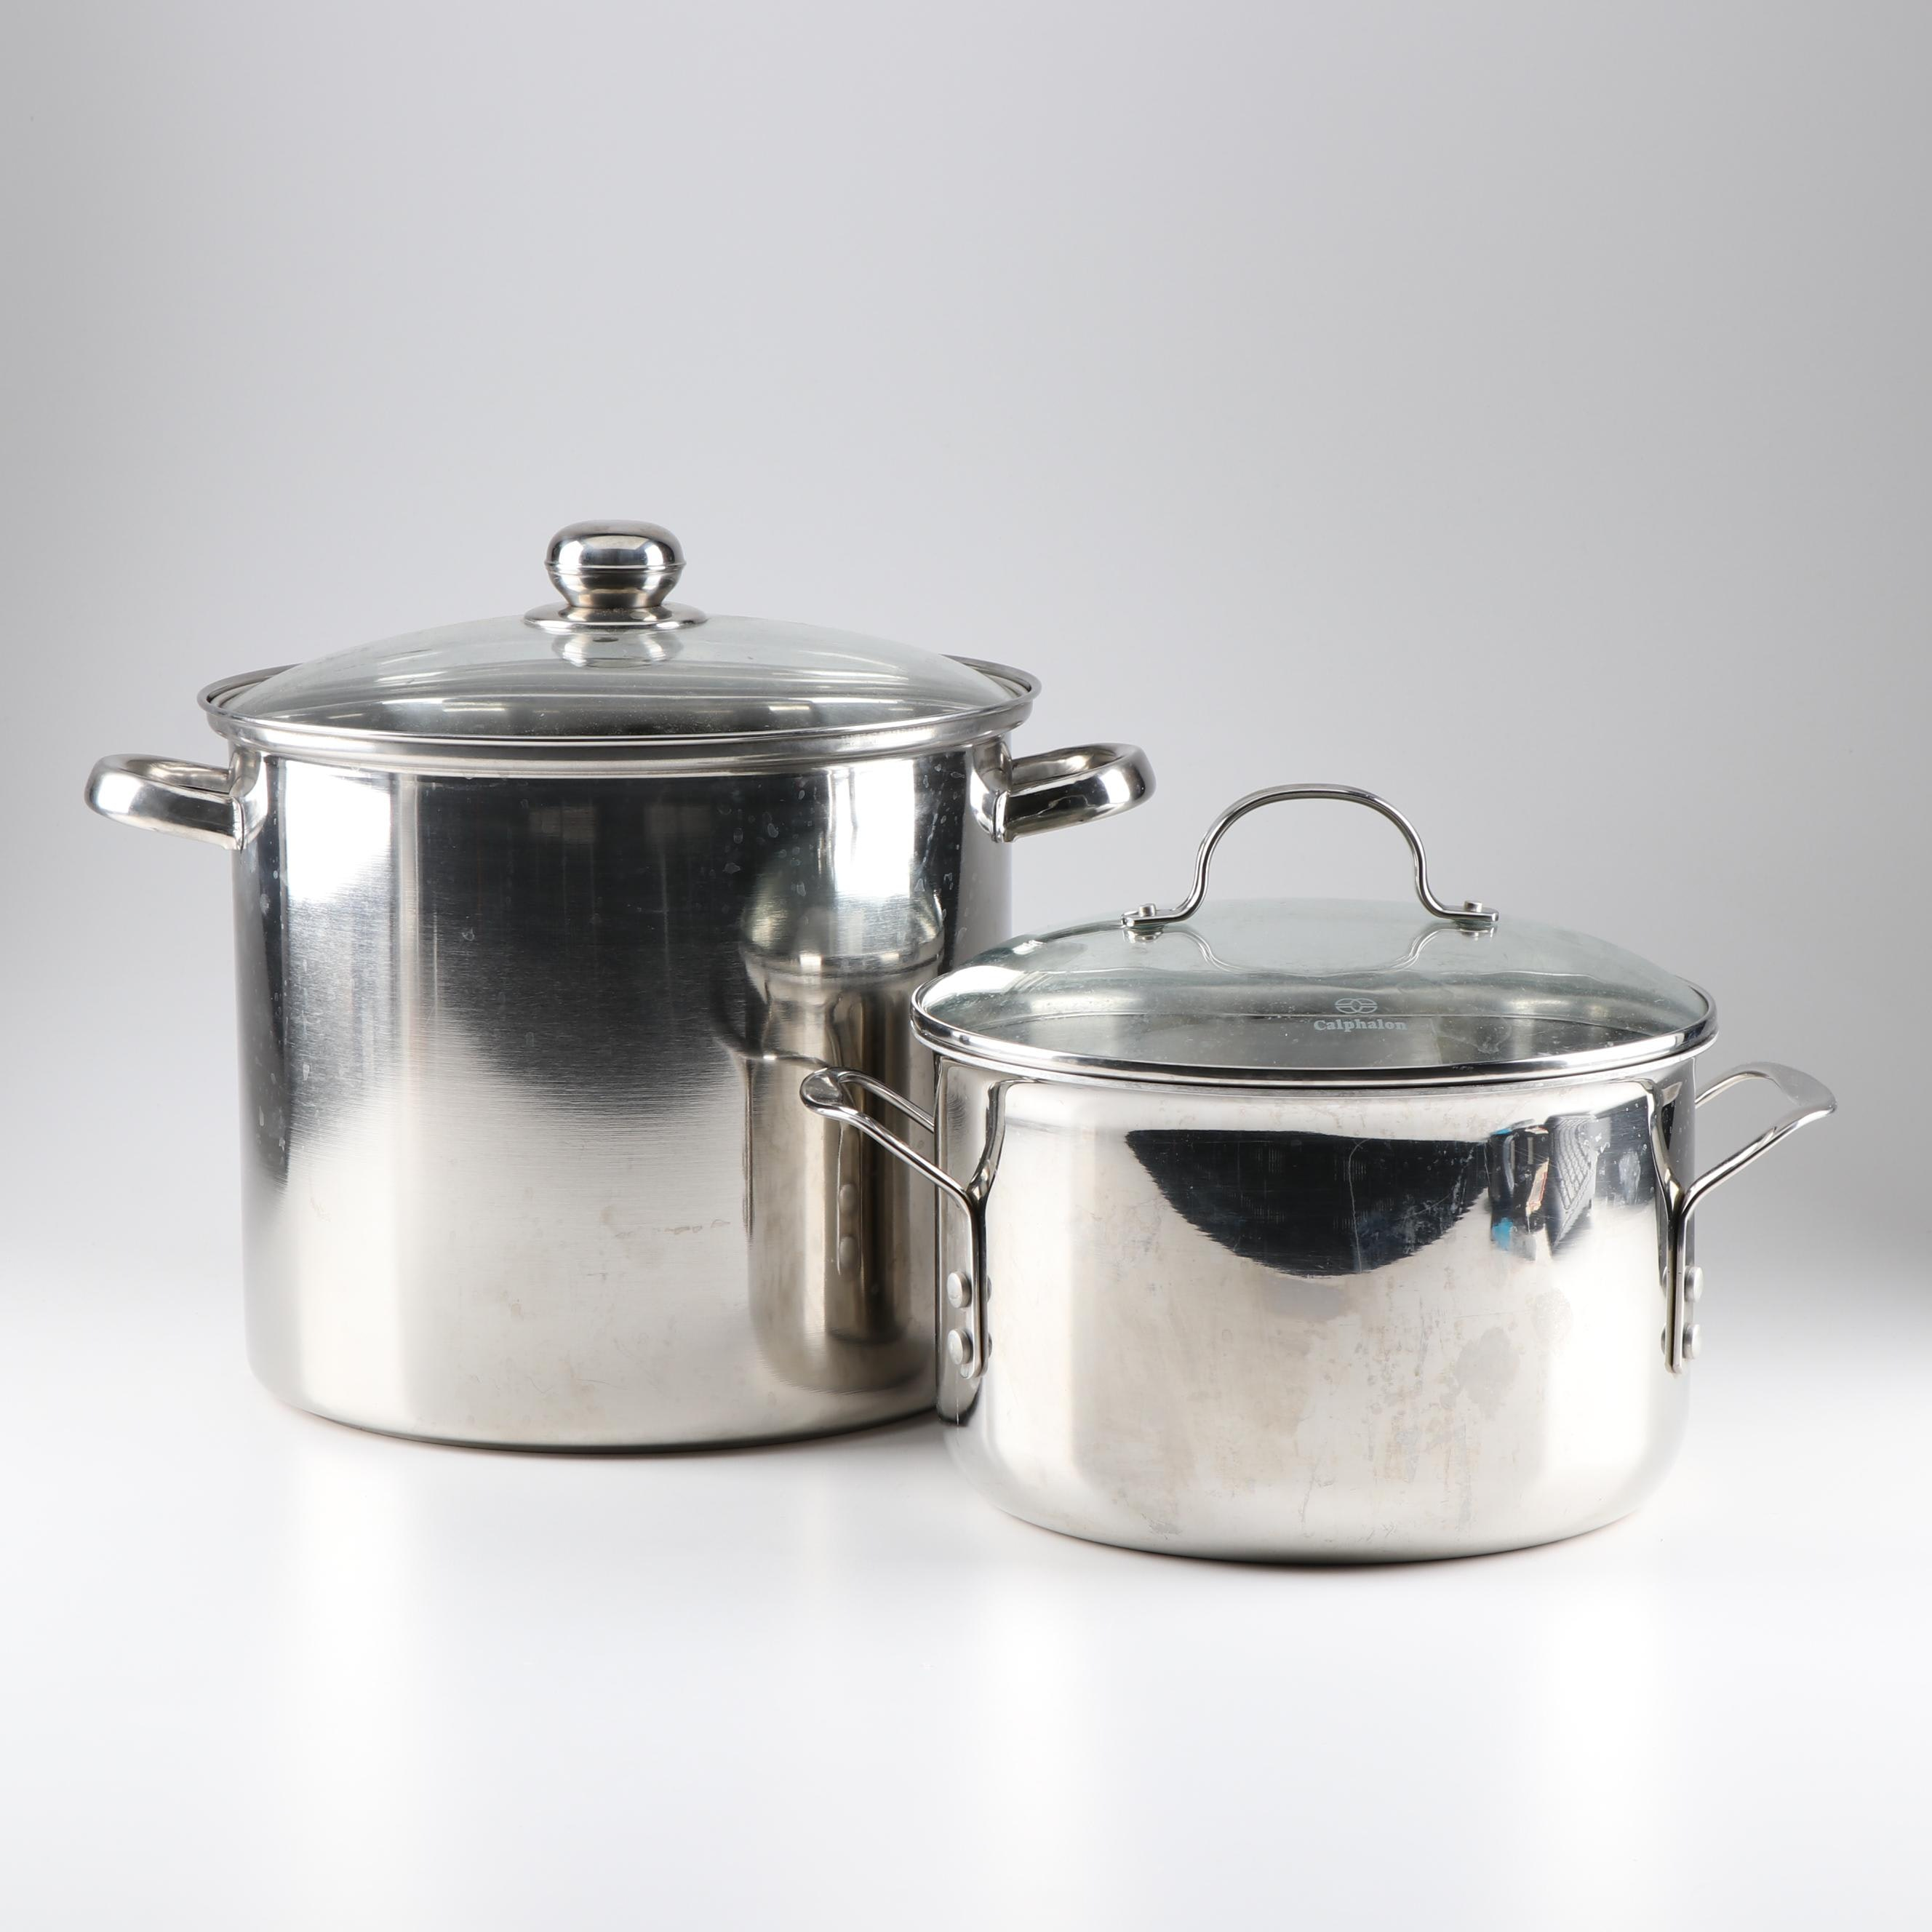 Sharda Stockpot and Calphalon 8 QT Pot